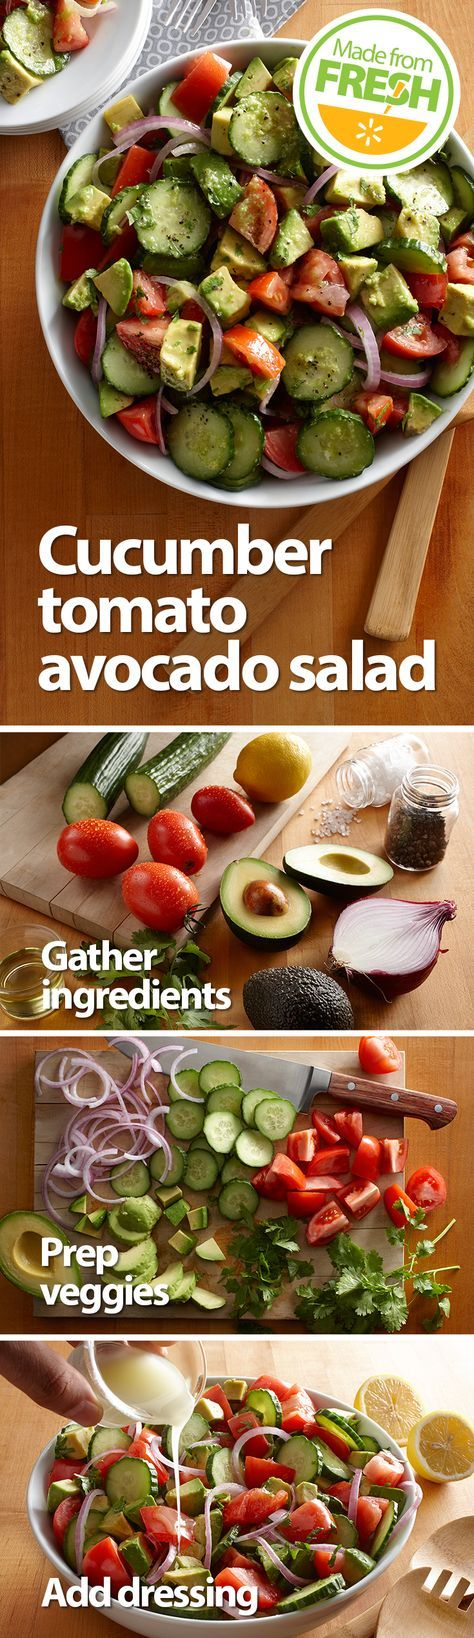 Creamy avocados, crisp cucumbers, and rich Roma tomatoes make this fresh summer salad a mouthwatering side packed with flavor and texture you have to try to believe.